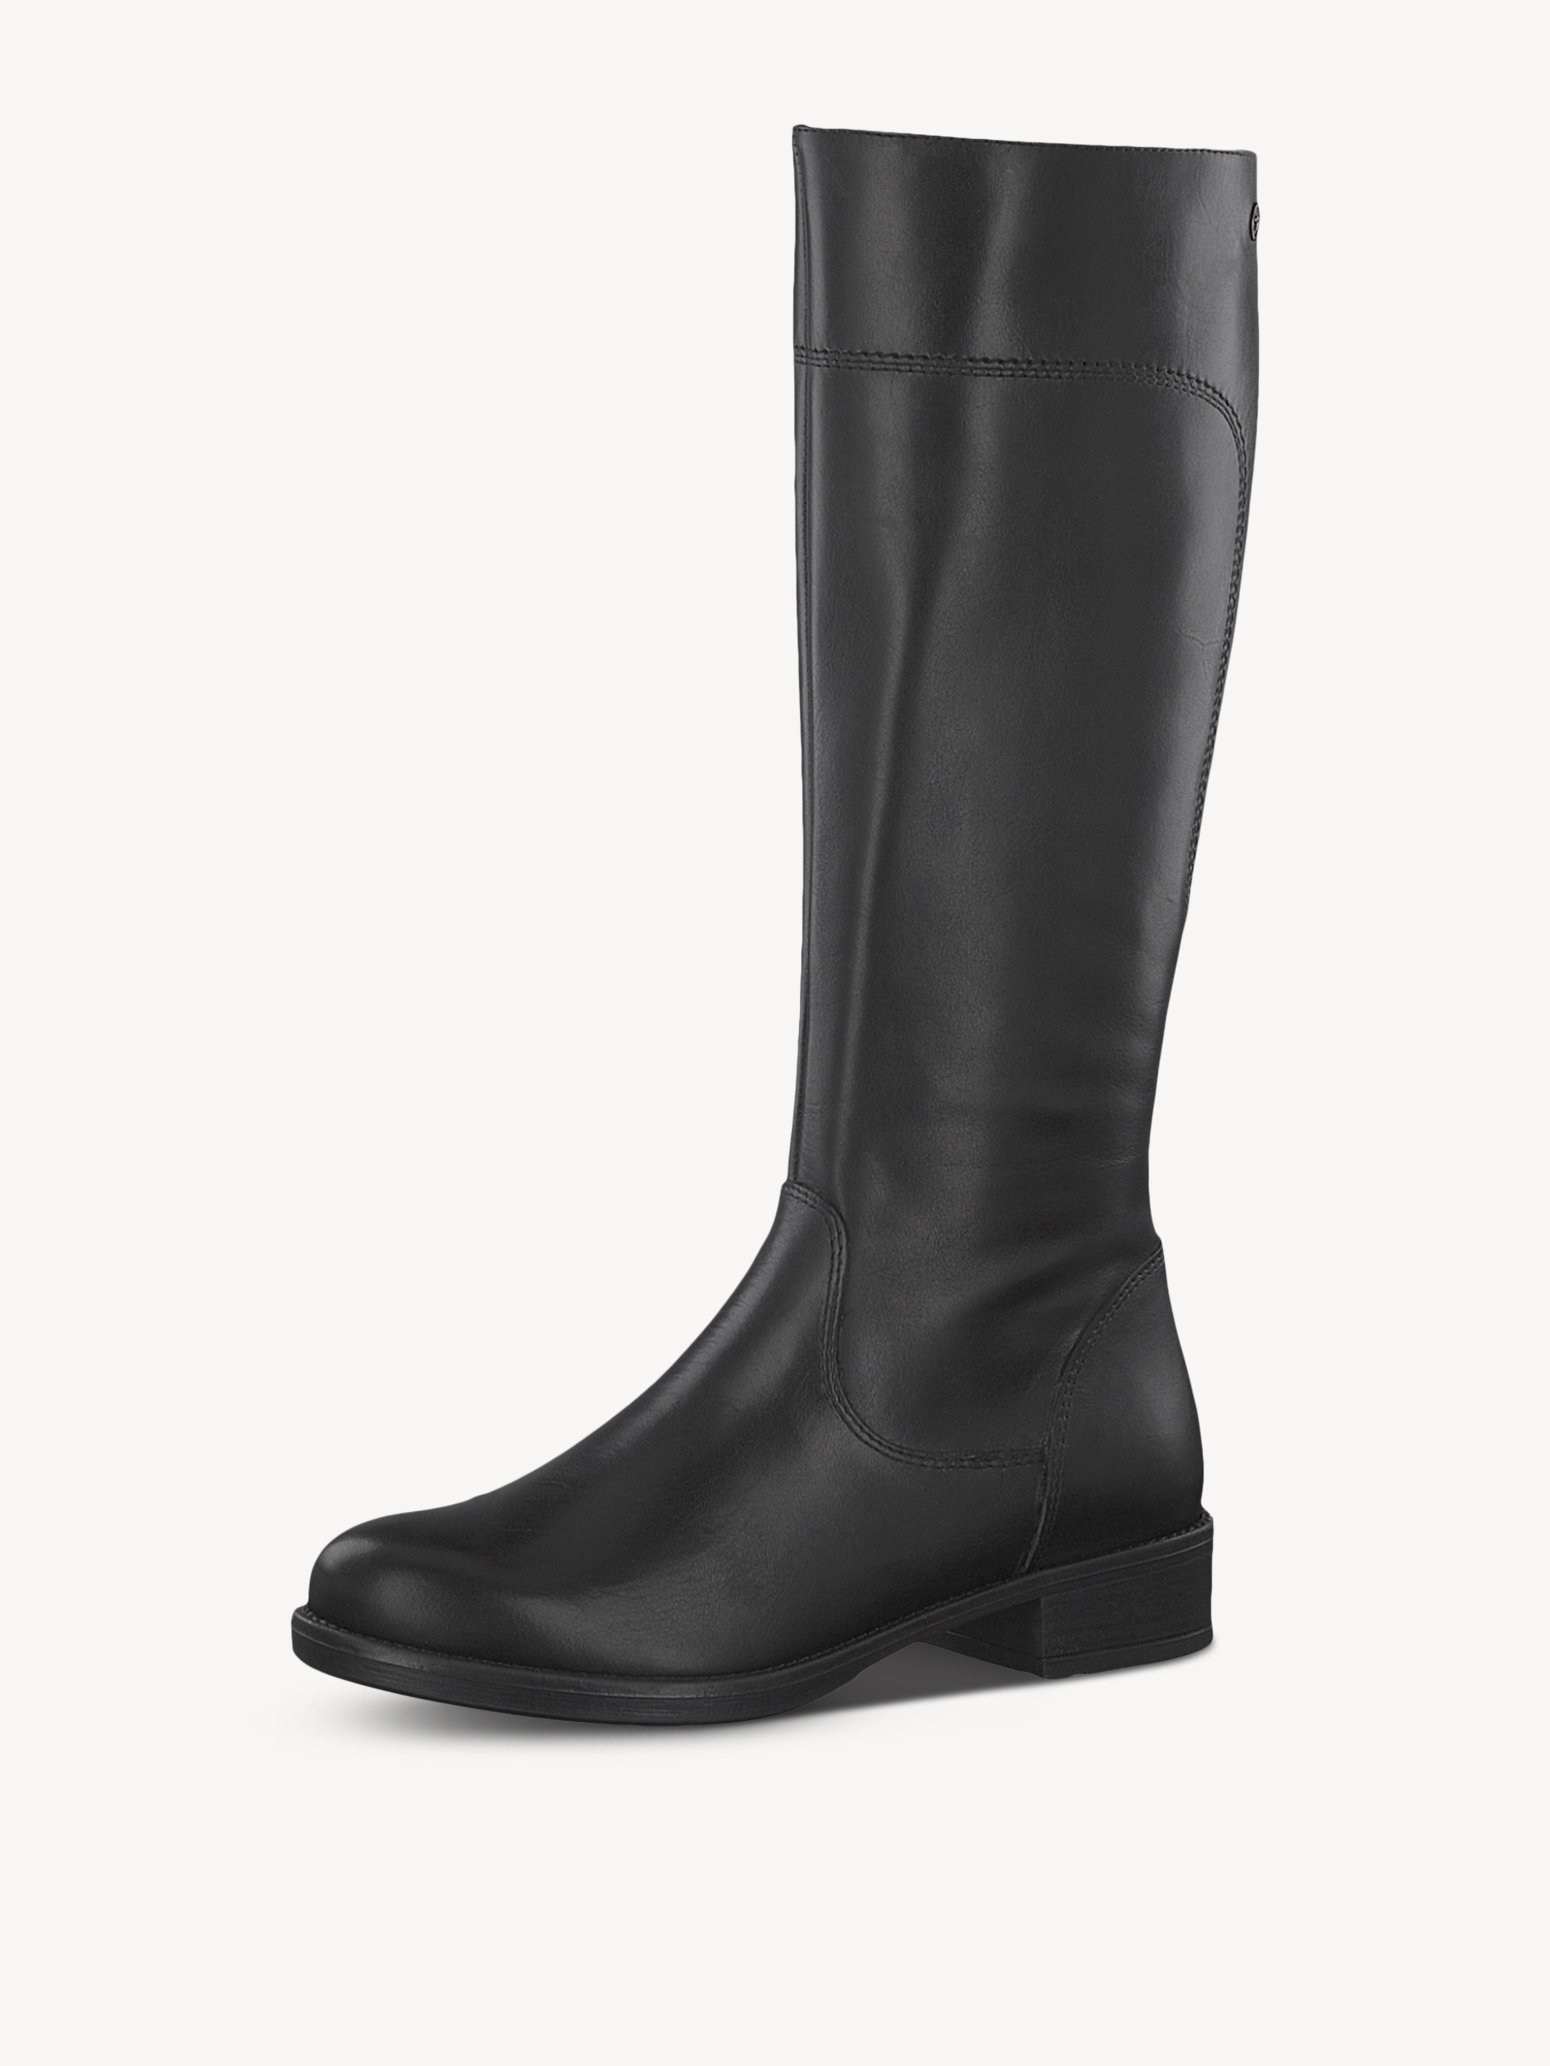 Leather Boots - black, BLACK, hi-res